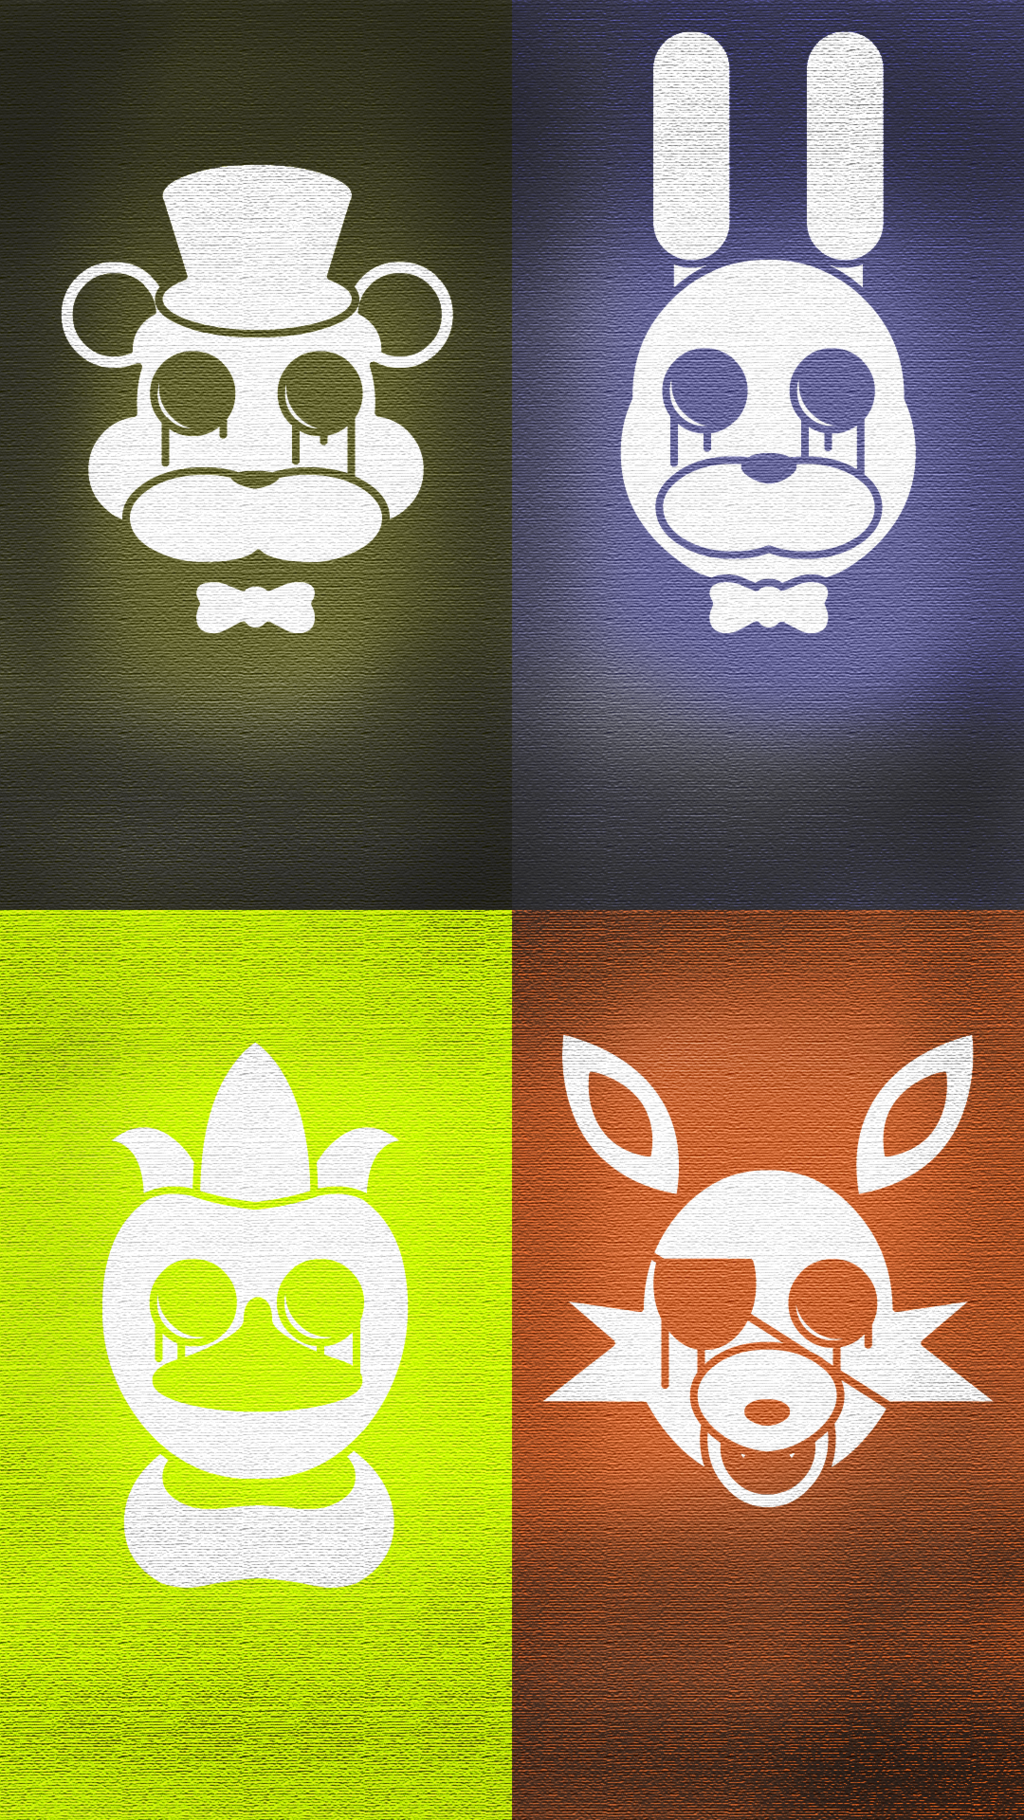 Five Nights At Freddys Phone Wallpaper HD by Teenage